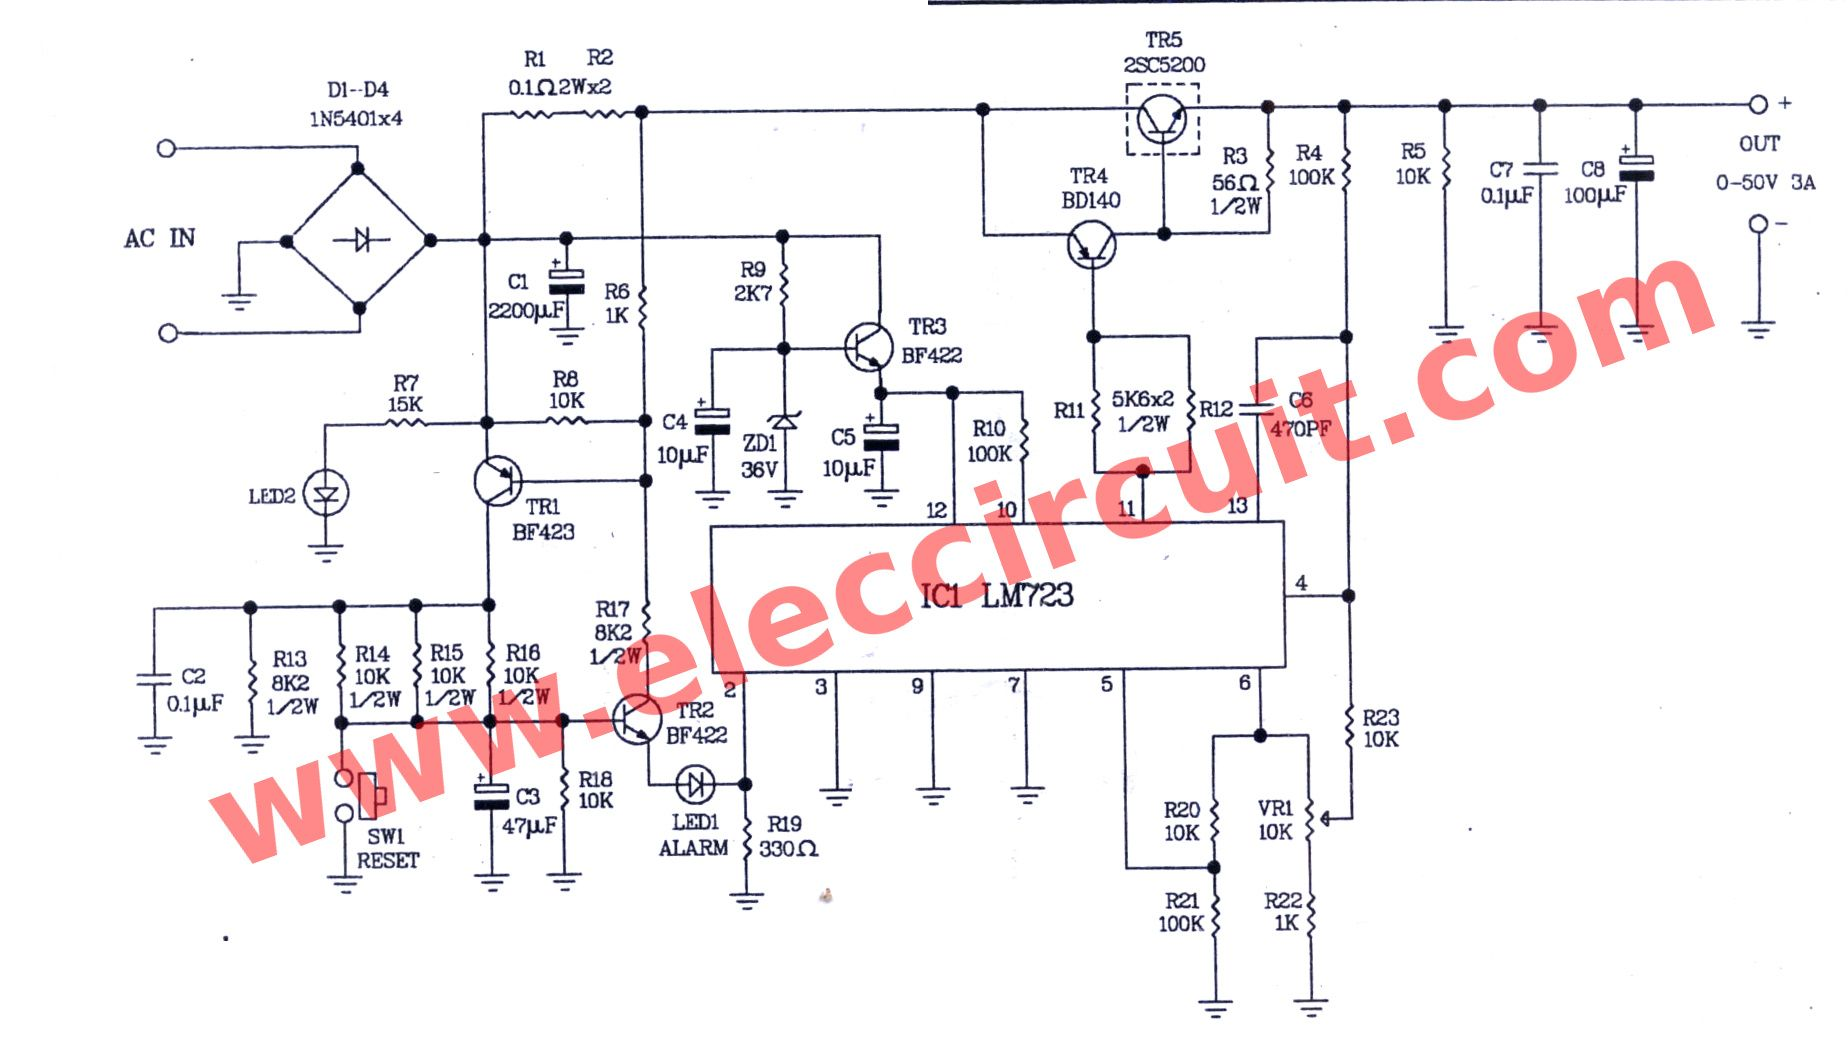 This regulator is 0 50v variable power supply circuit 3a that adjust output voltage